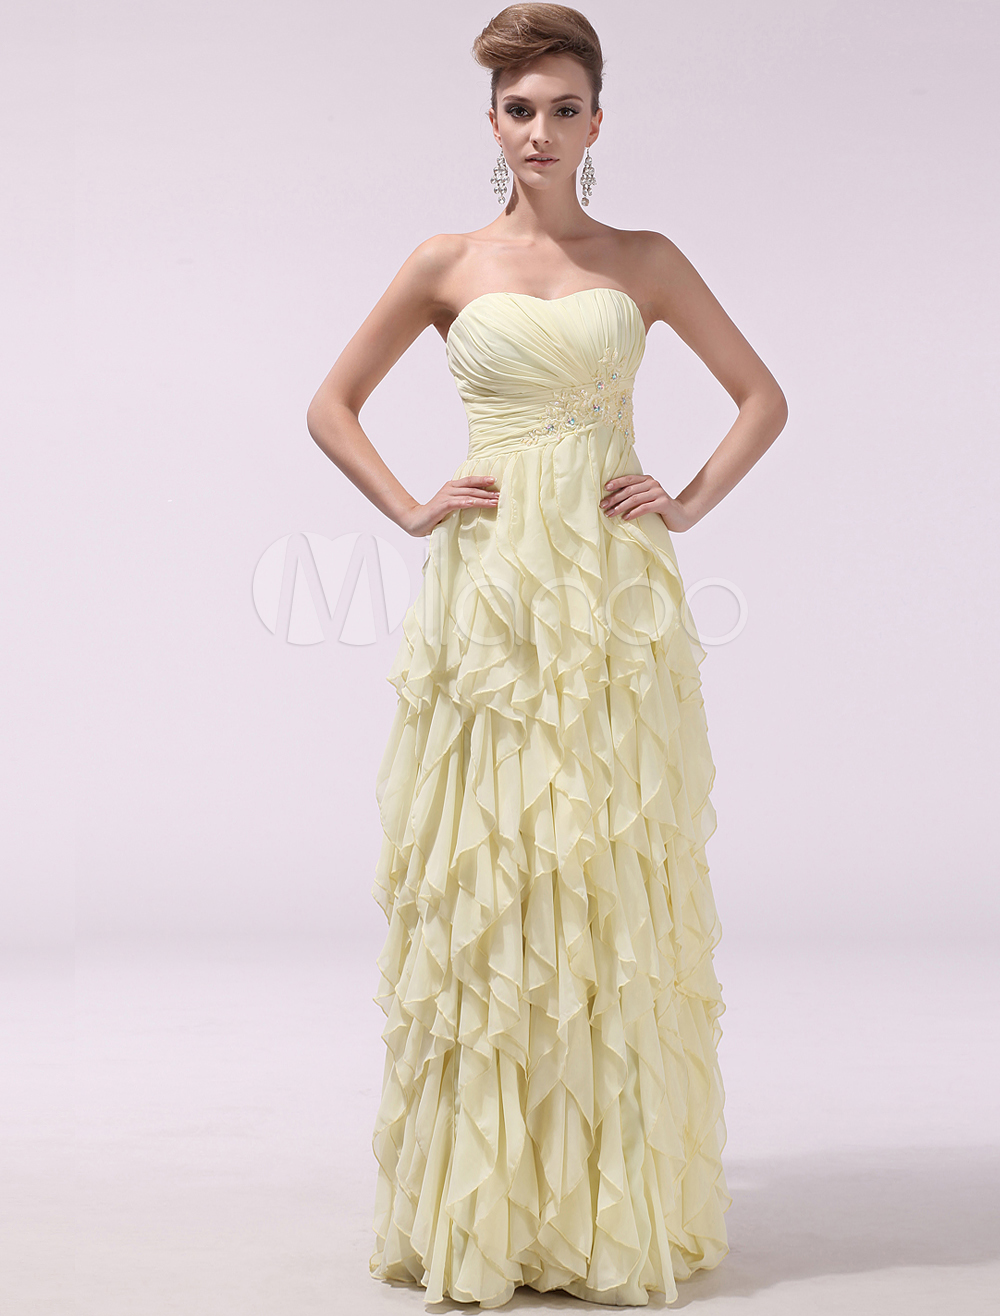 Buy Daffodil Strapless Cascading Ruffle A-line Chiffon Evening Dress Milanoo for $149.39 in Milanoo store